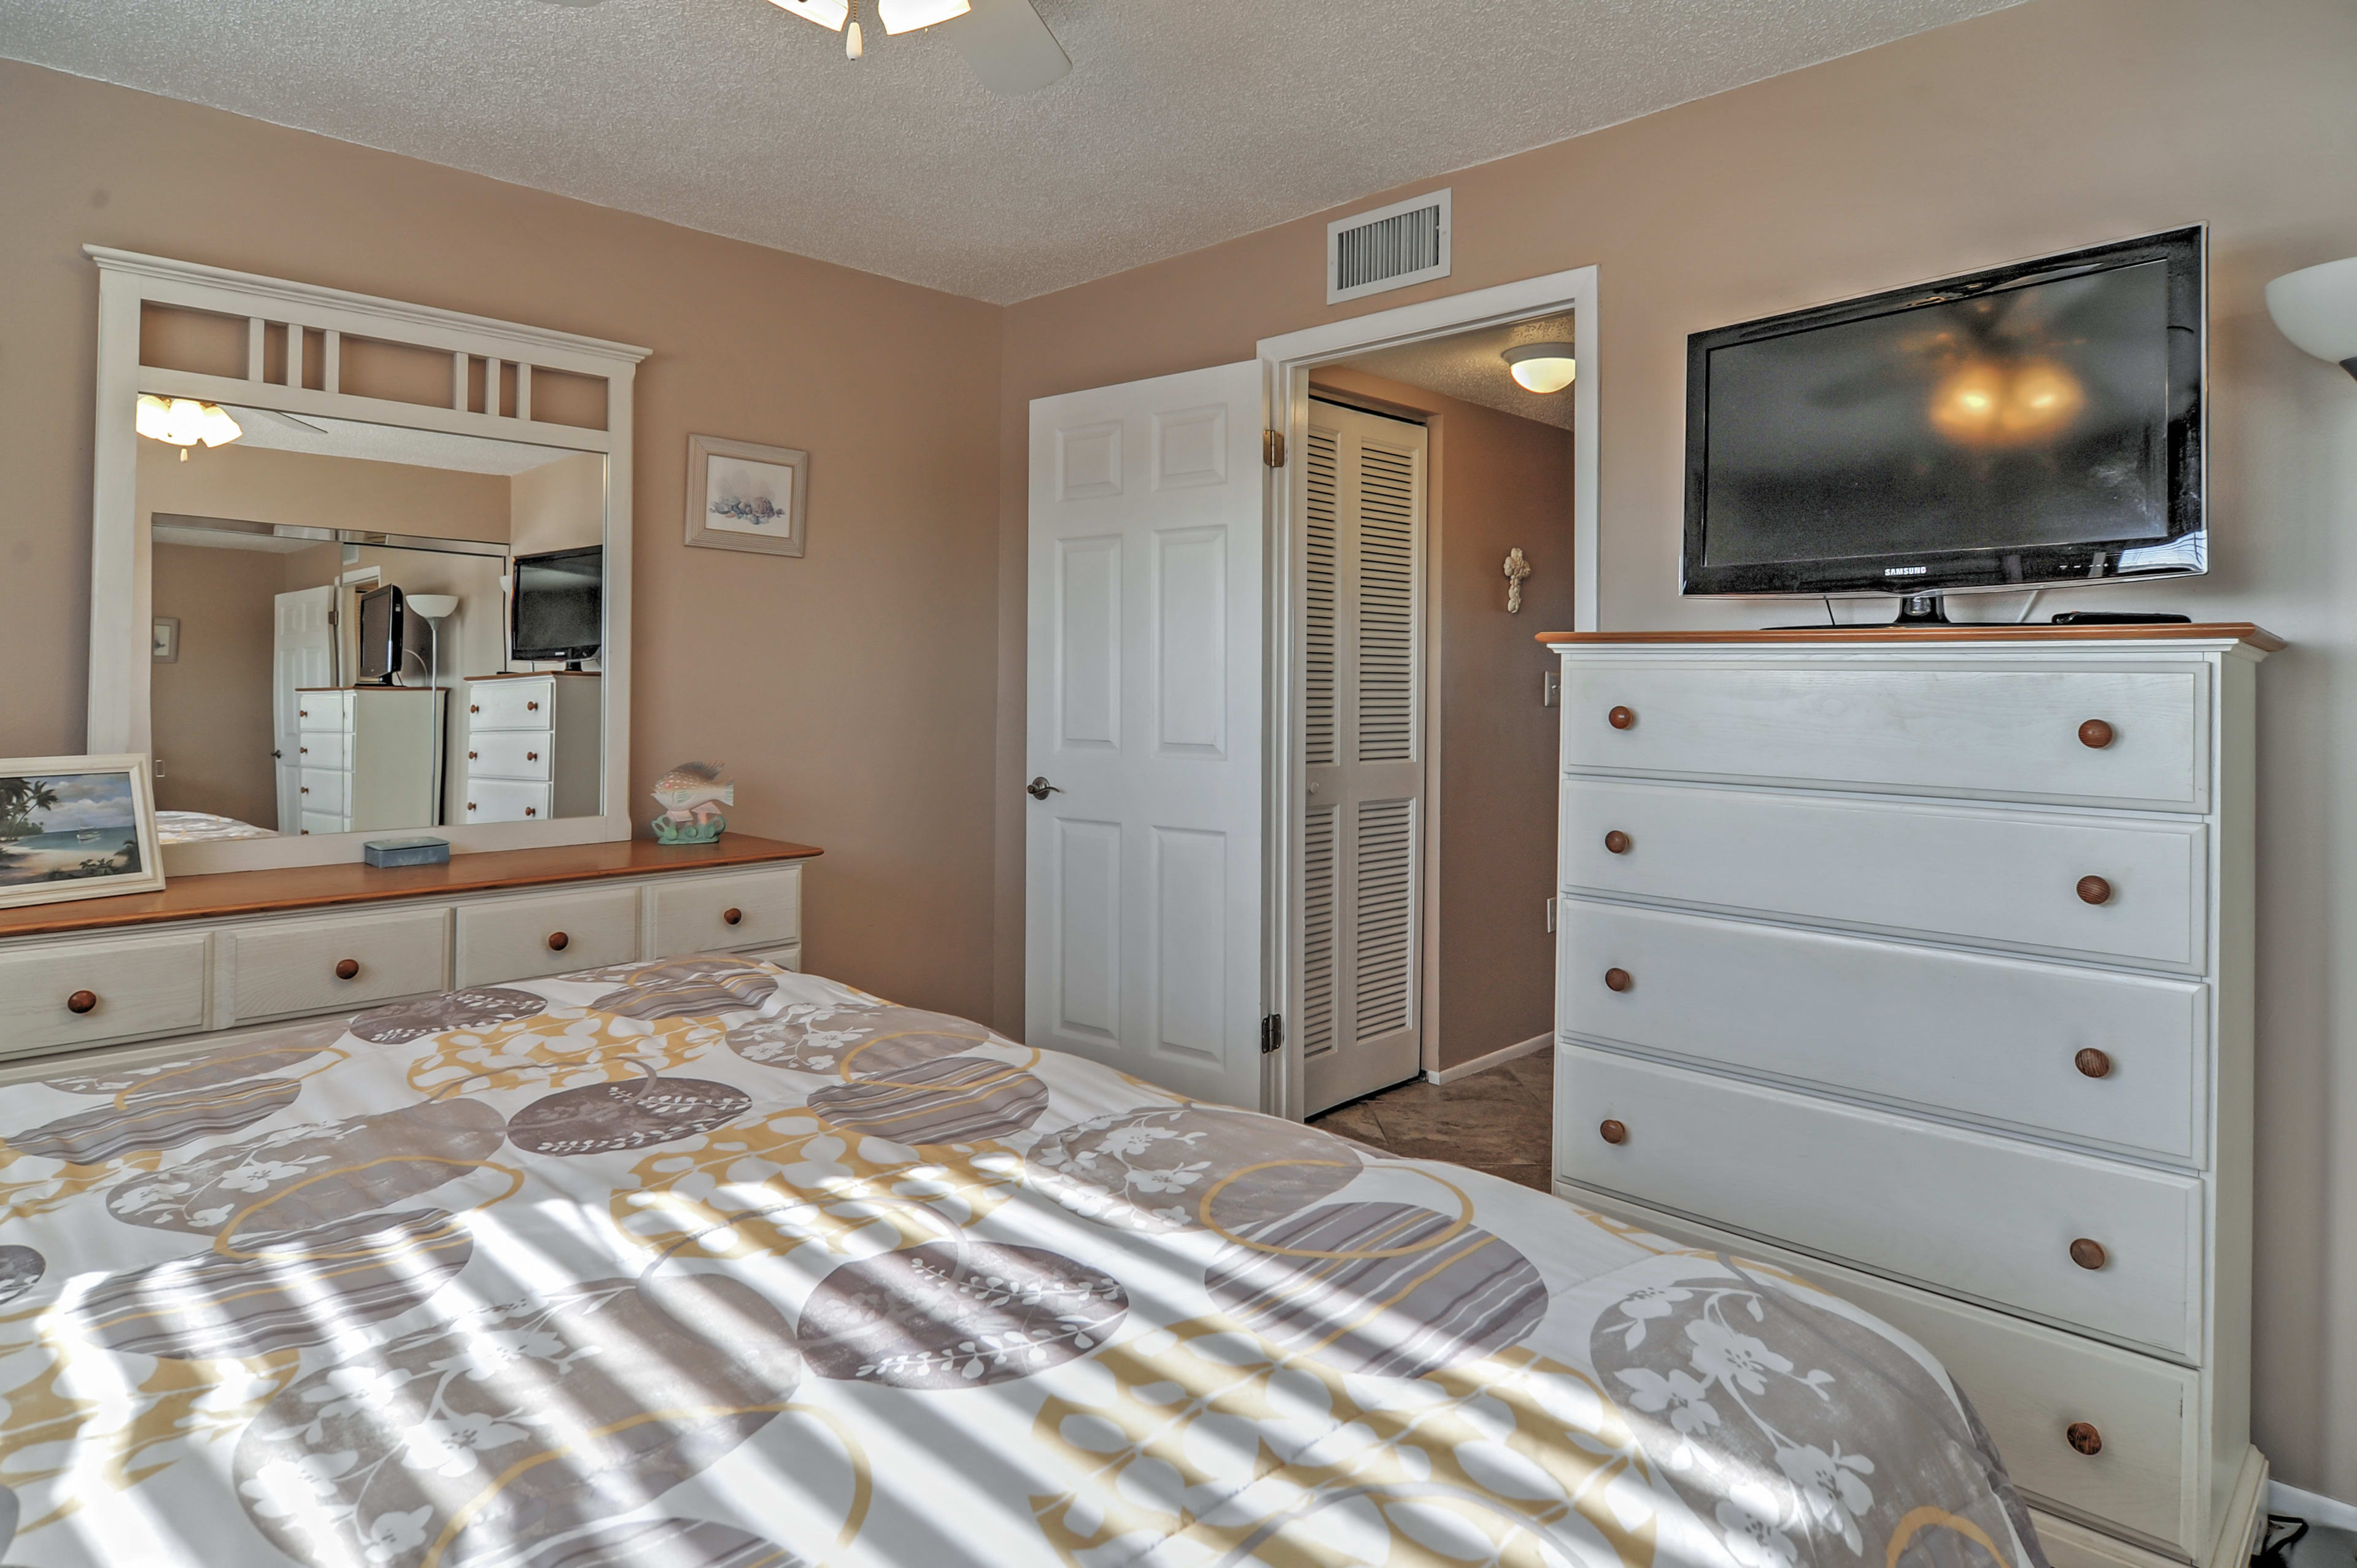 The bedroom has a flat screen TV for your entertainment.